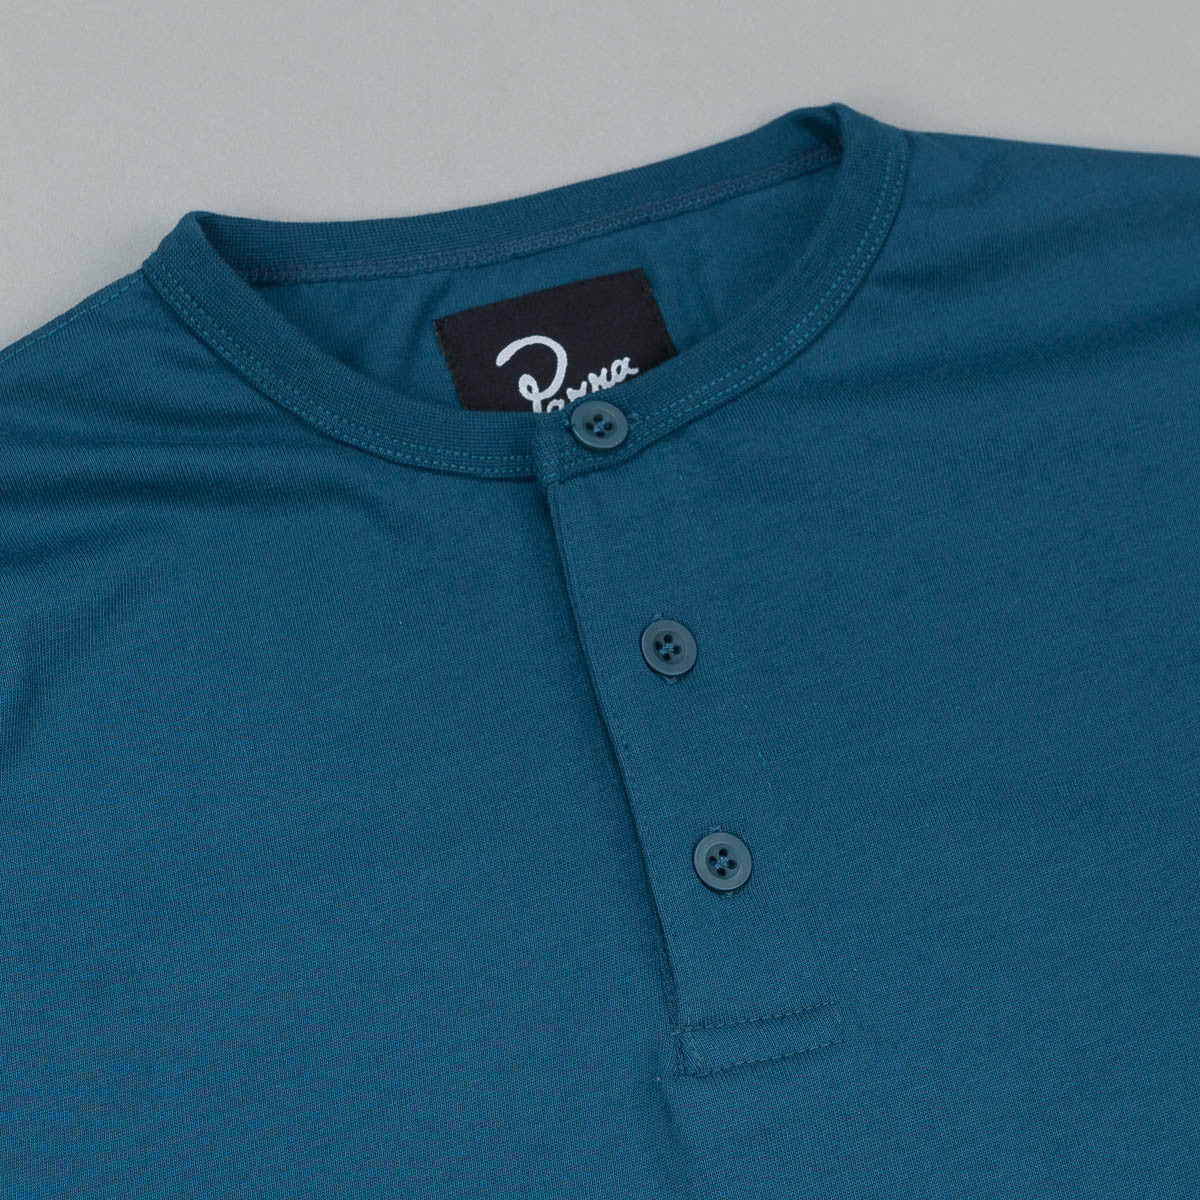 Parra Henley Long Sleeve T-Shirt - Mallard Green / Blue / Pink